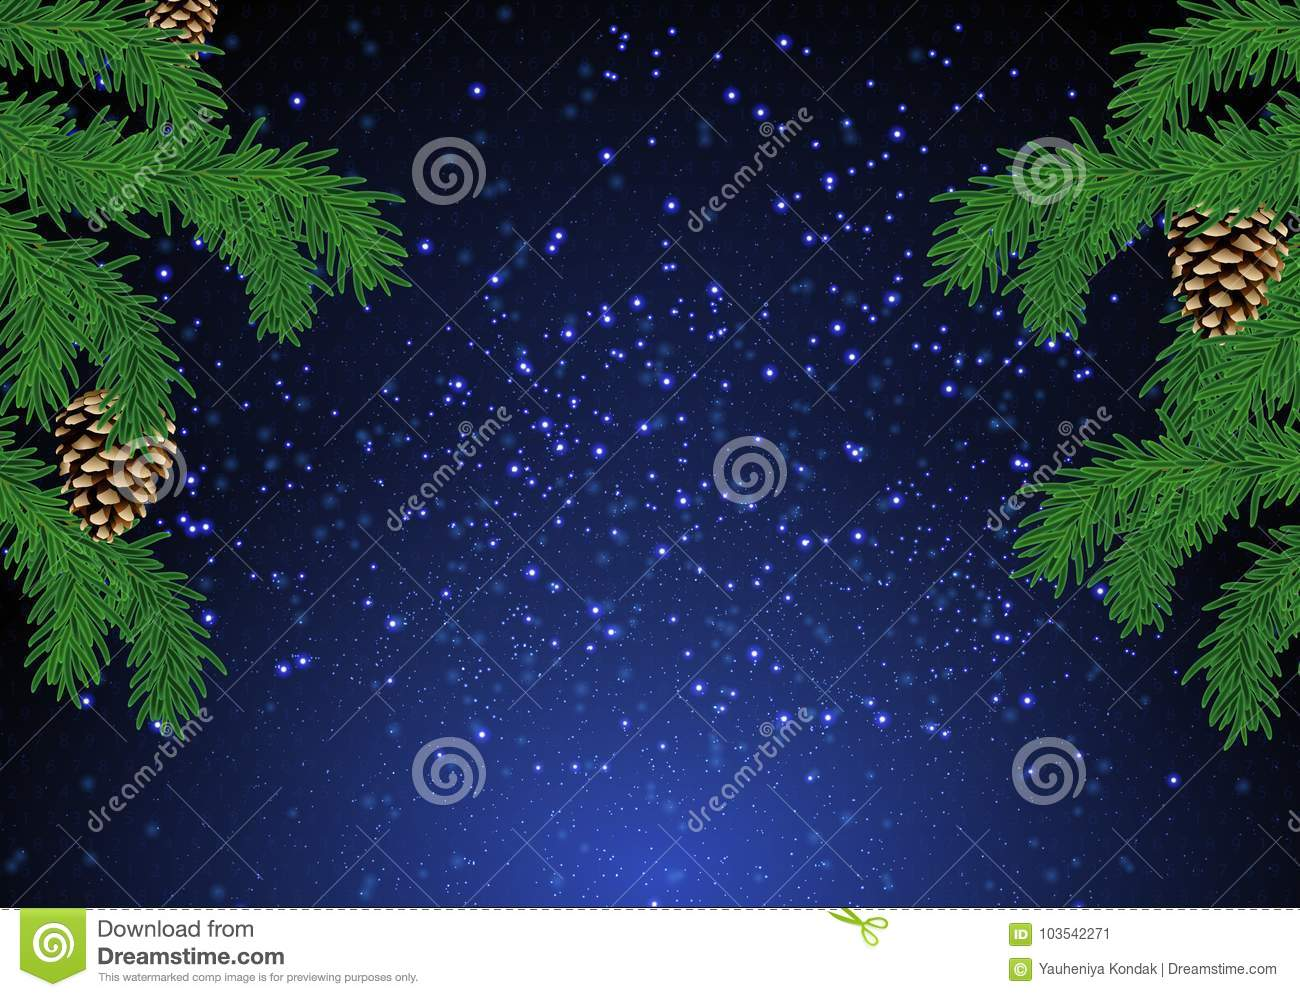 Christmas fir tree background over magic blue sky with stars.